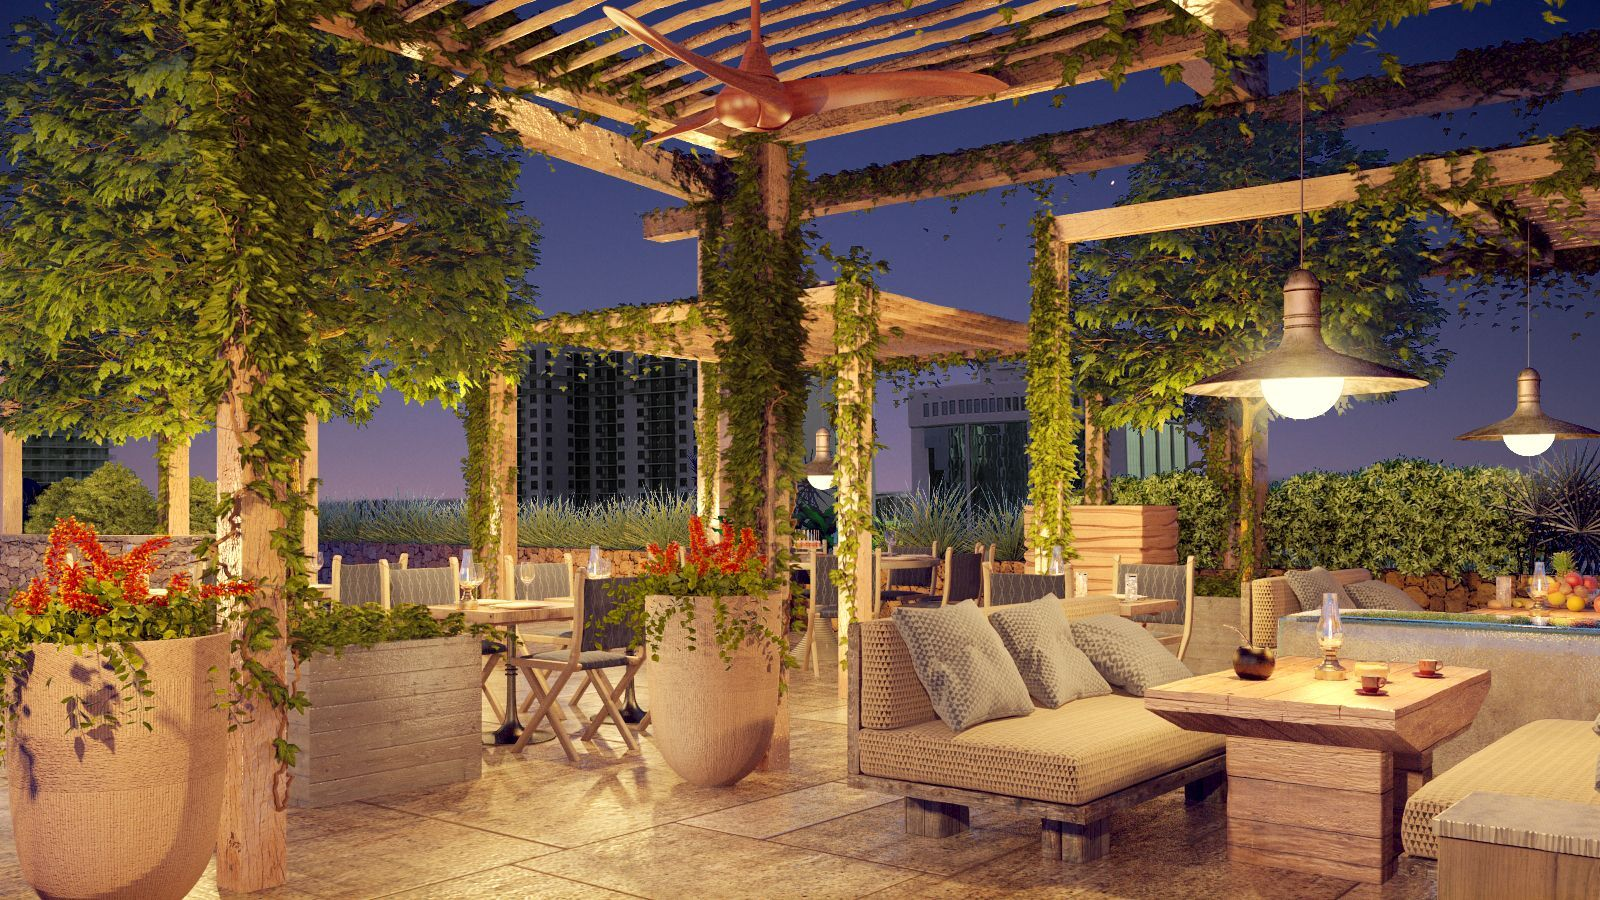 Related Image Brickell City Centre Miami Hotels City Resort